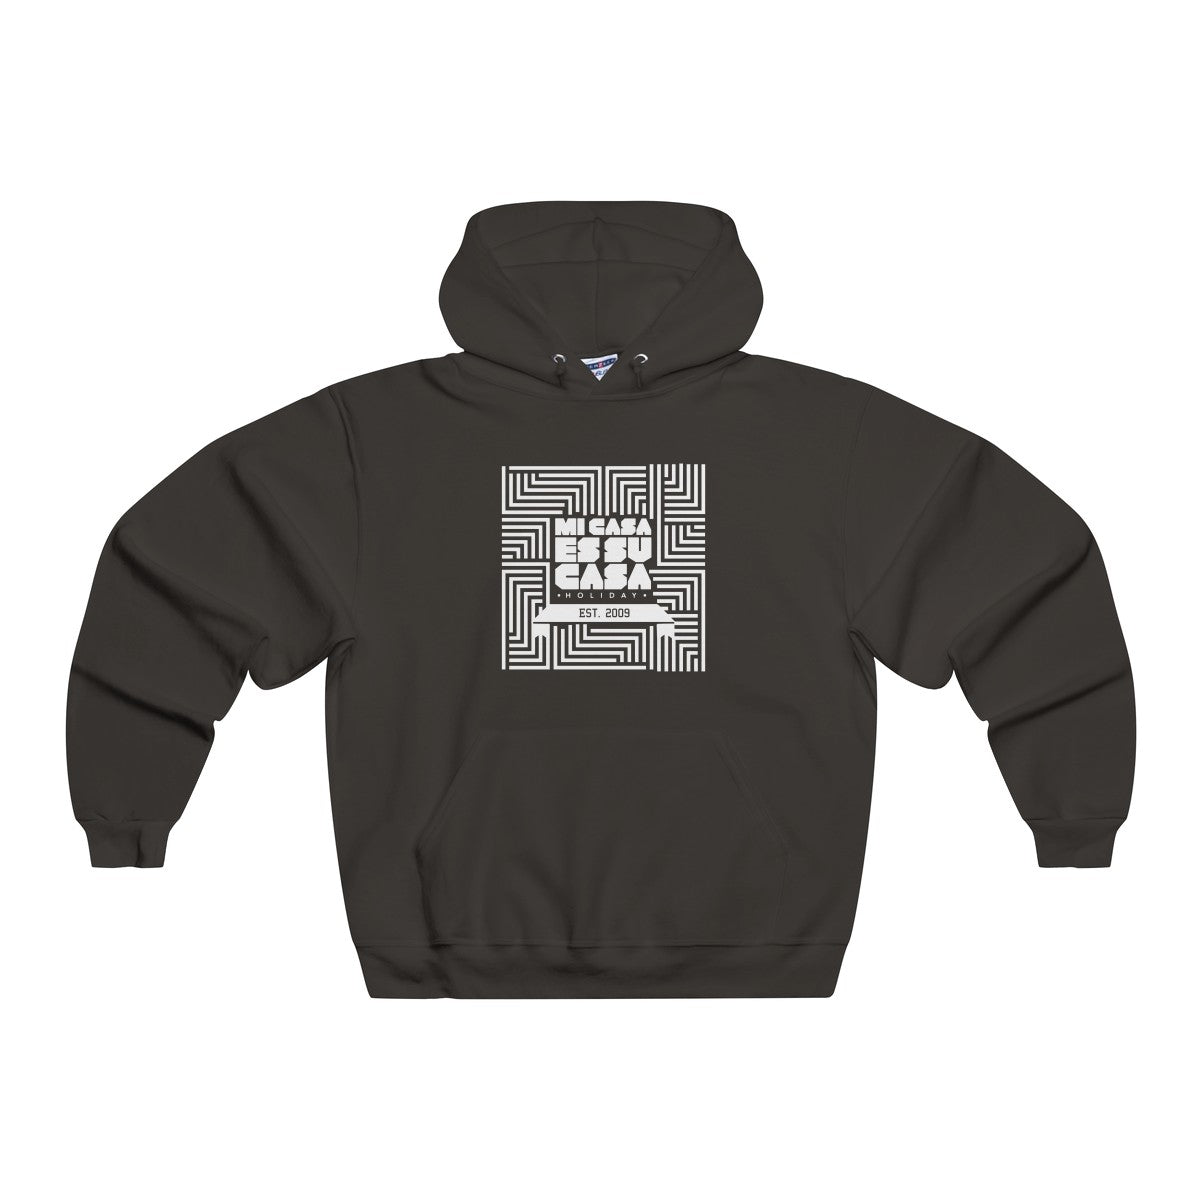 Mi Casa Holiday Est. 2009 NUBLEND® Hooded Sweatshirt